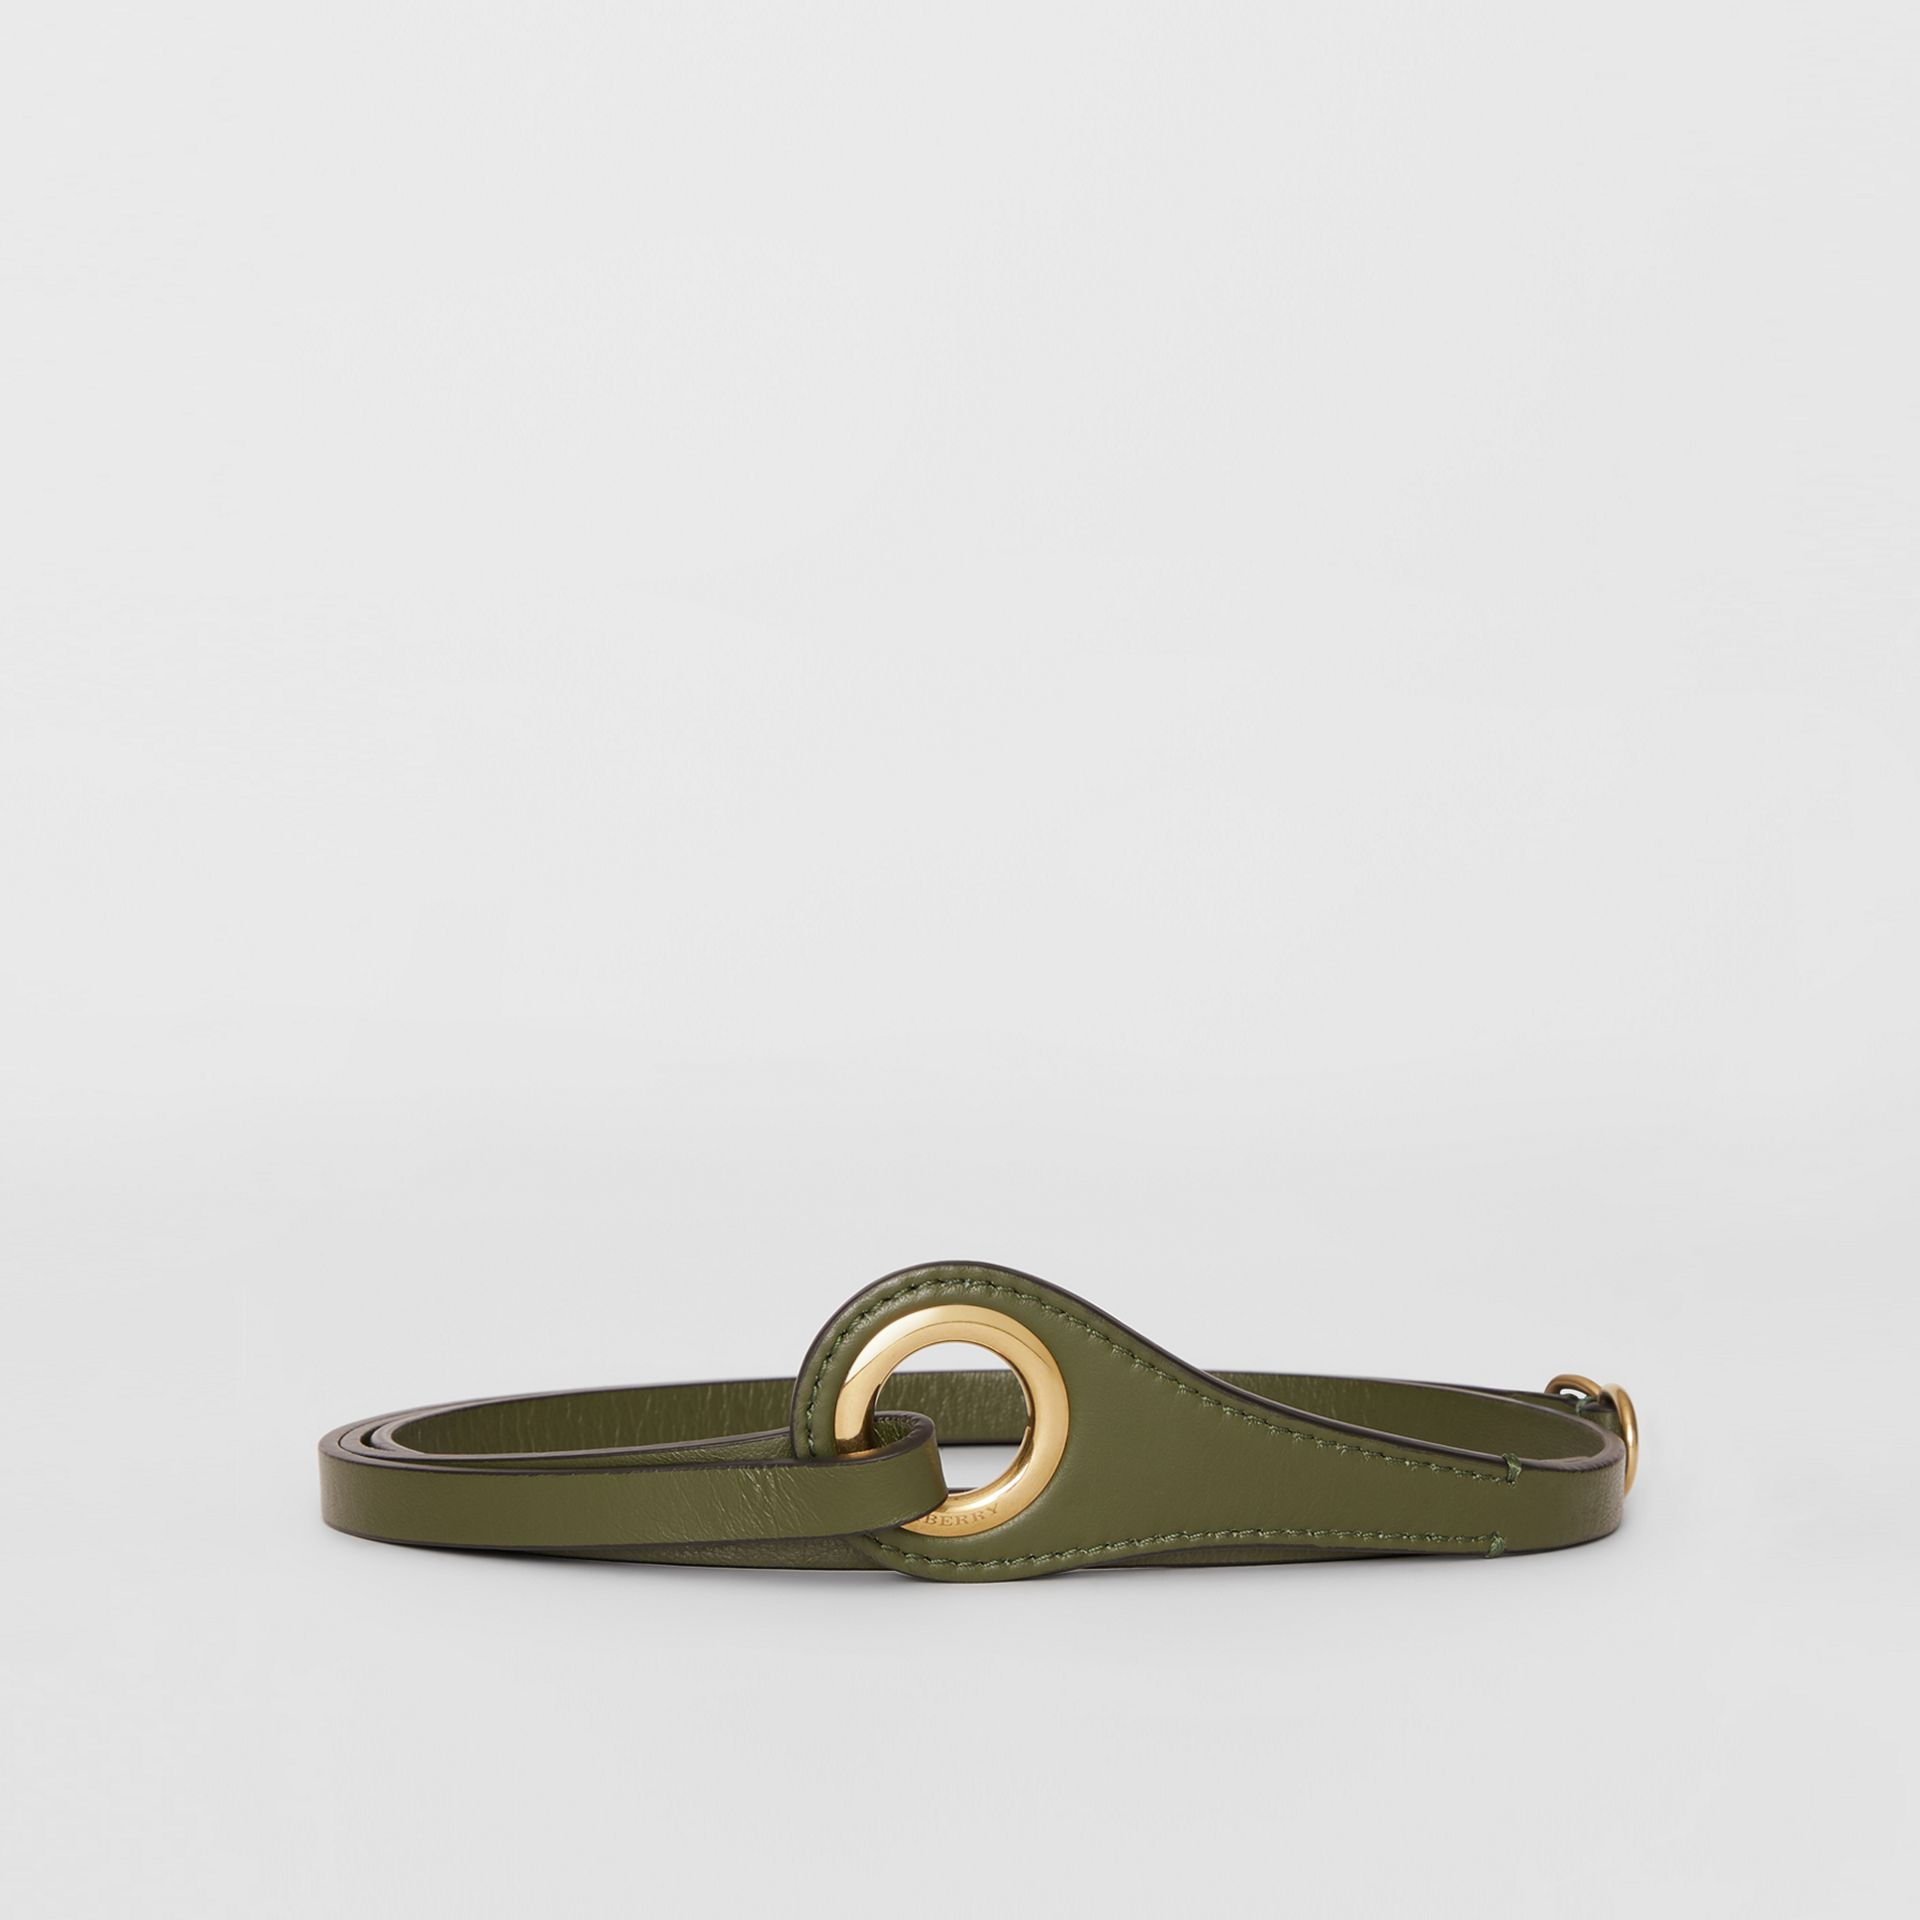 Grommet Detail Lambskin Belt in Dark Olive - Women | Burberry Australia - gallery image 3